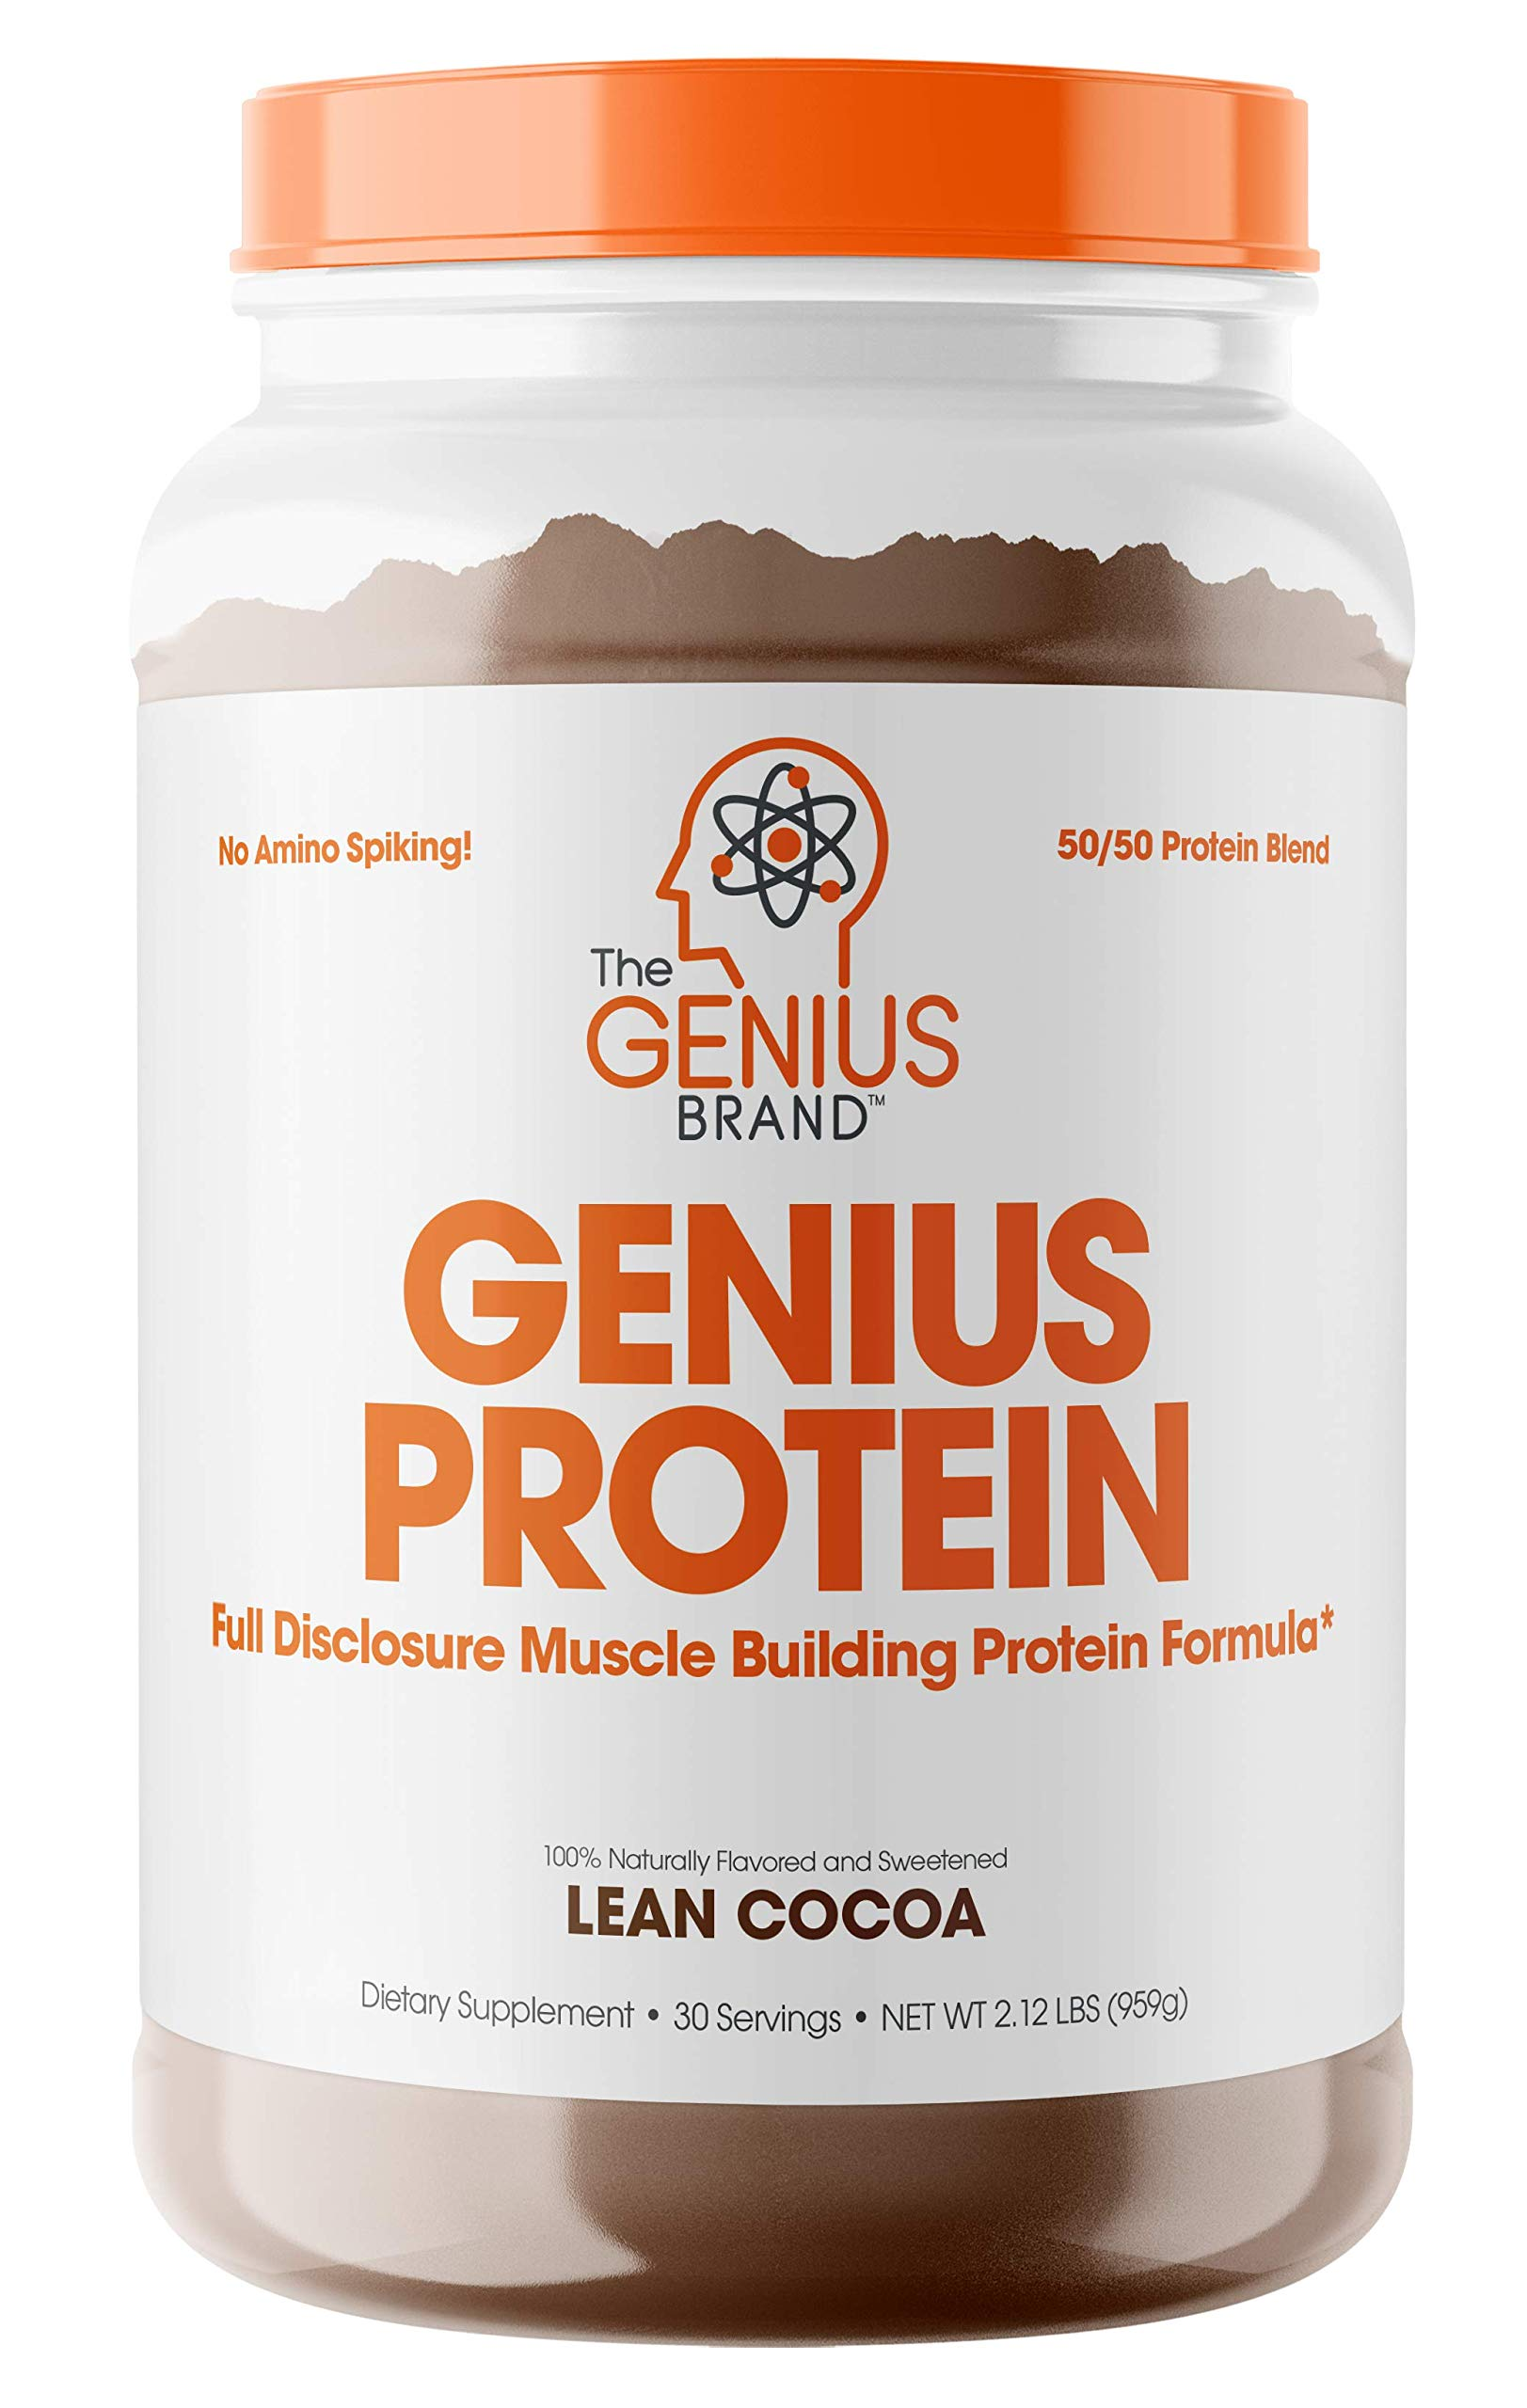 Genius Protein Powder - Natural Whey Protein Isolate & Micellar Casein Lean Muscle Building Blend, Grass Fed Post Workout Strength Builder for Weight Loss and Strength Gains, Lean Cocoa, 2 LB by The Genius Brand